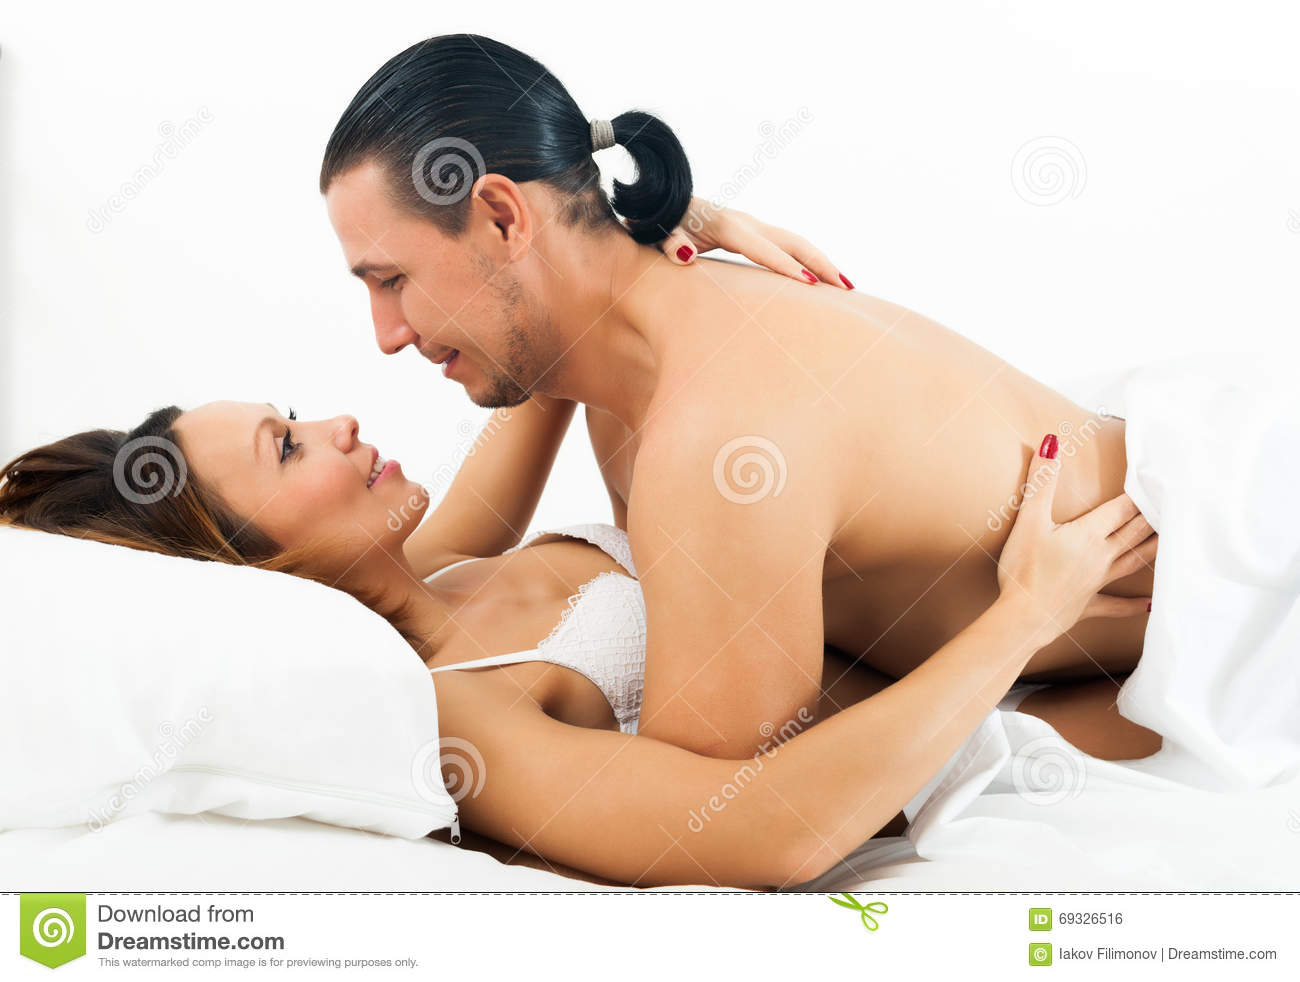 handsome man and woman having sex stock photo - image of sensual